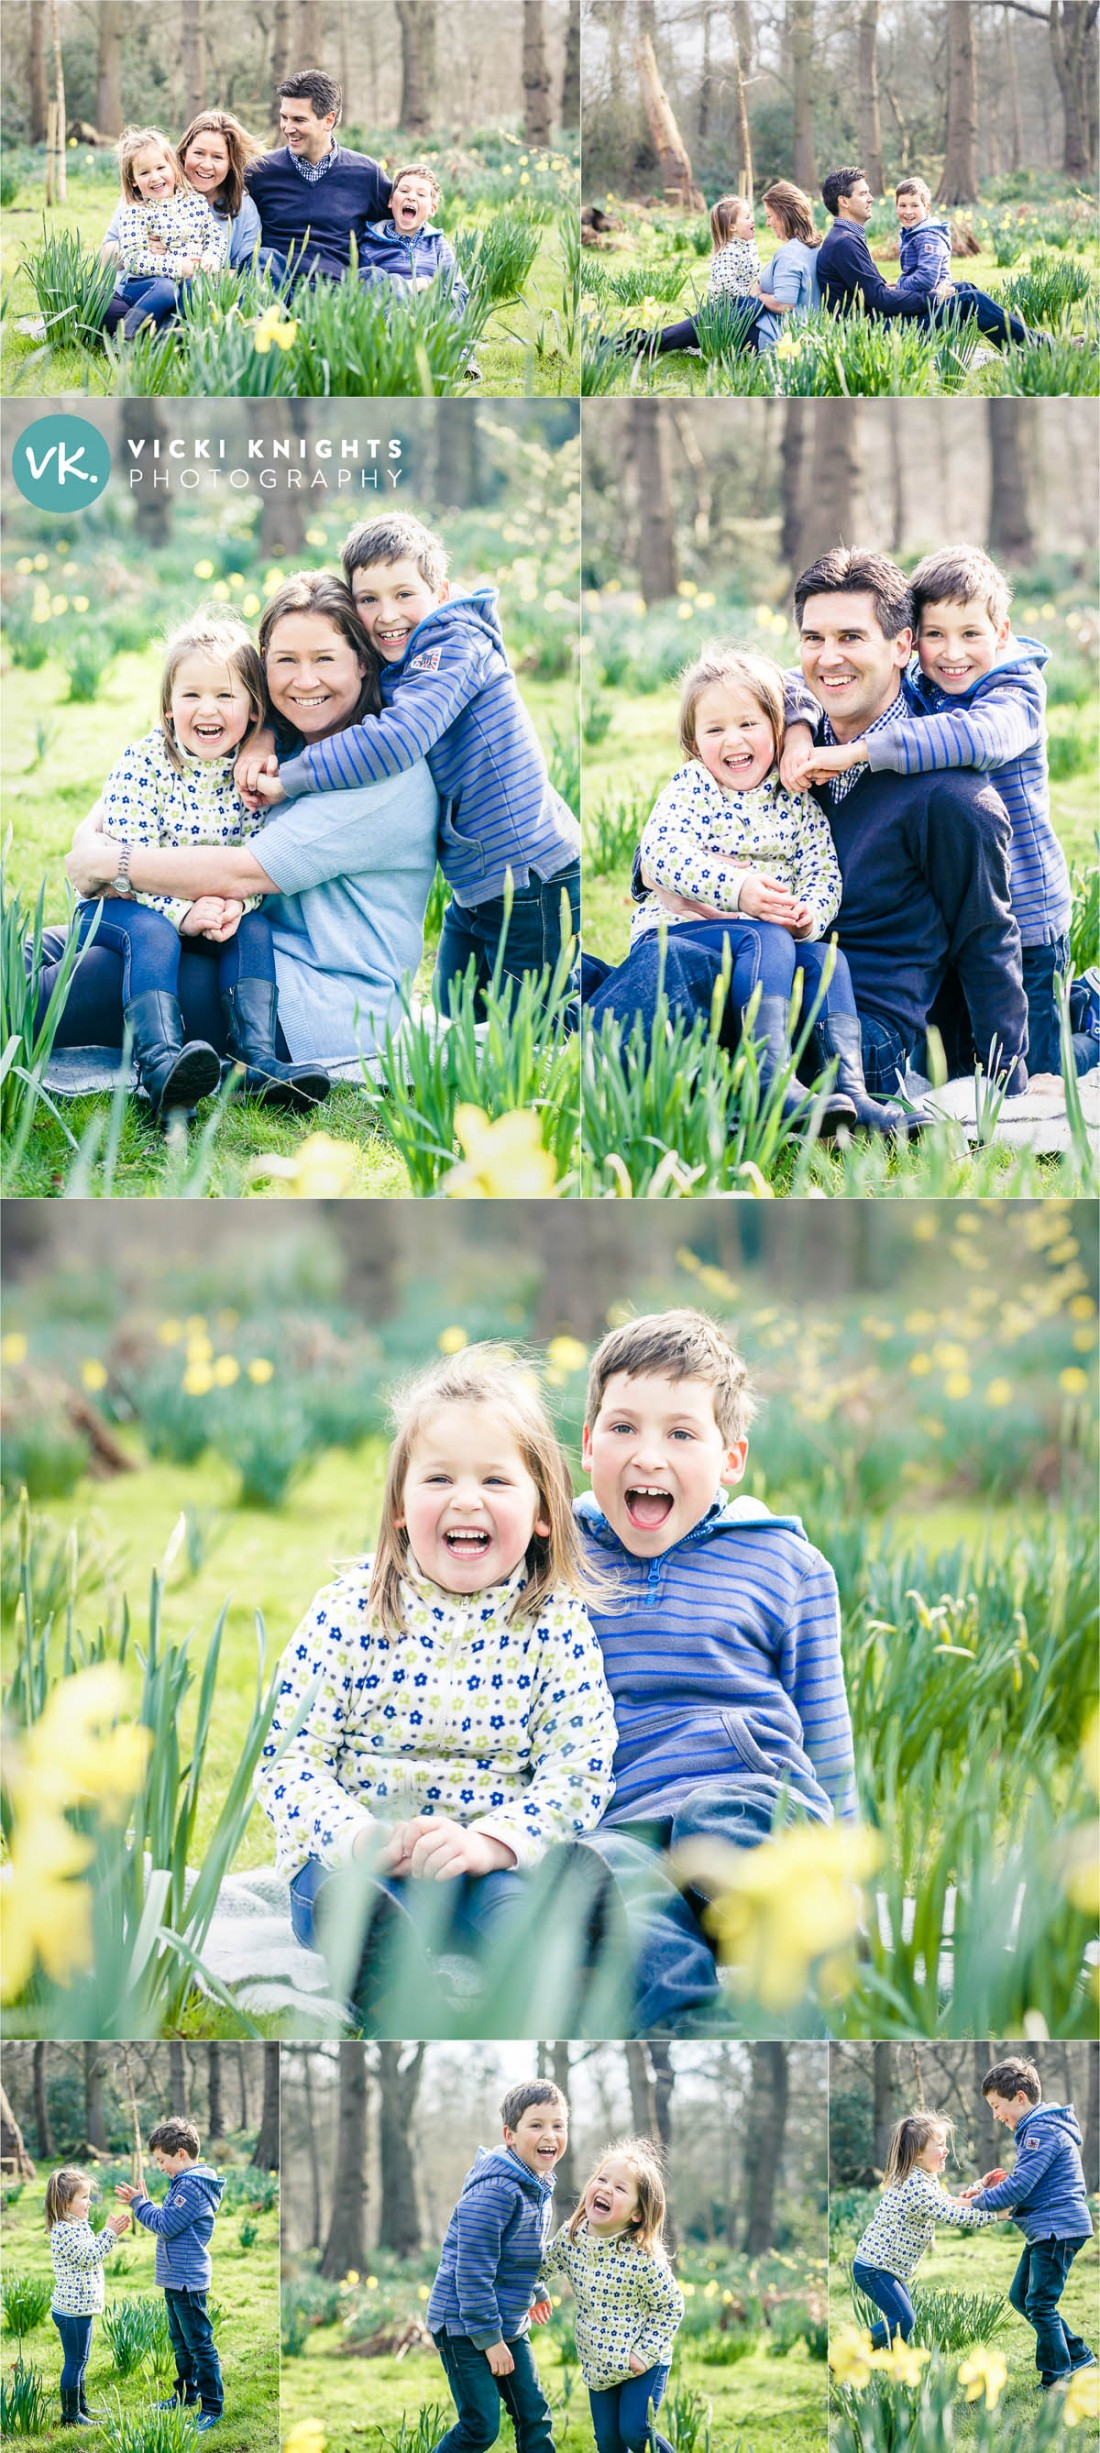 teddington-family-photo-shoot-outdoors